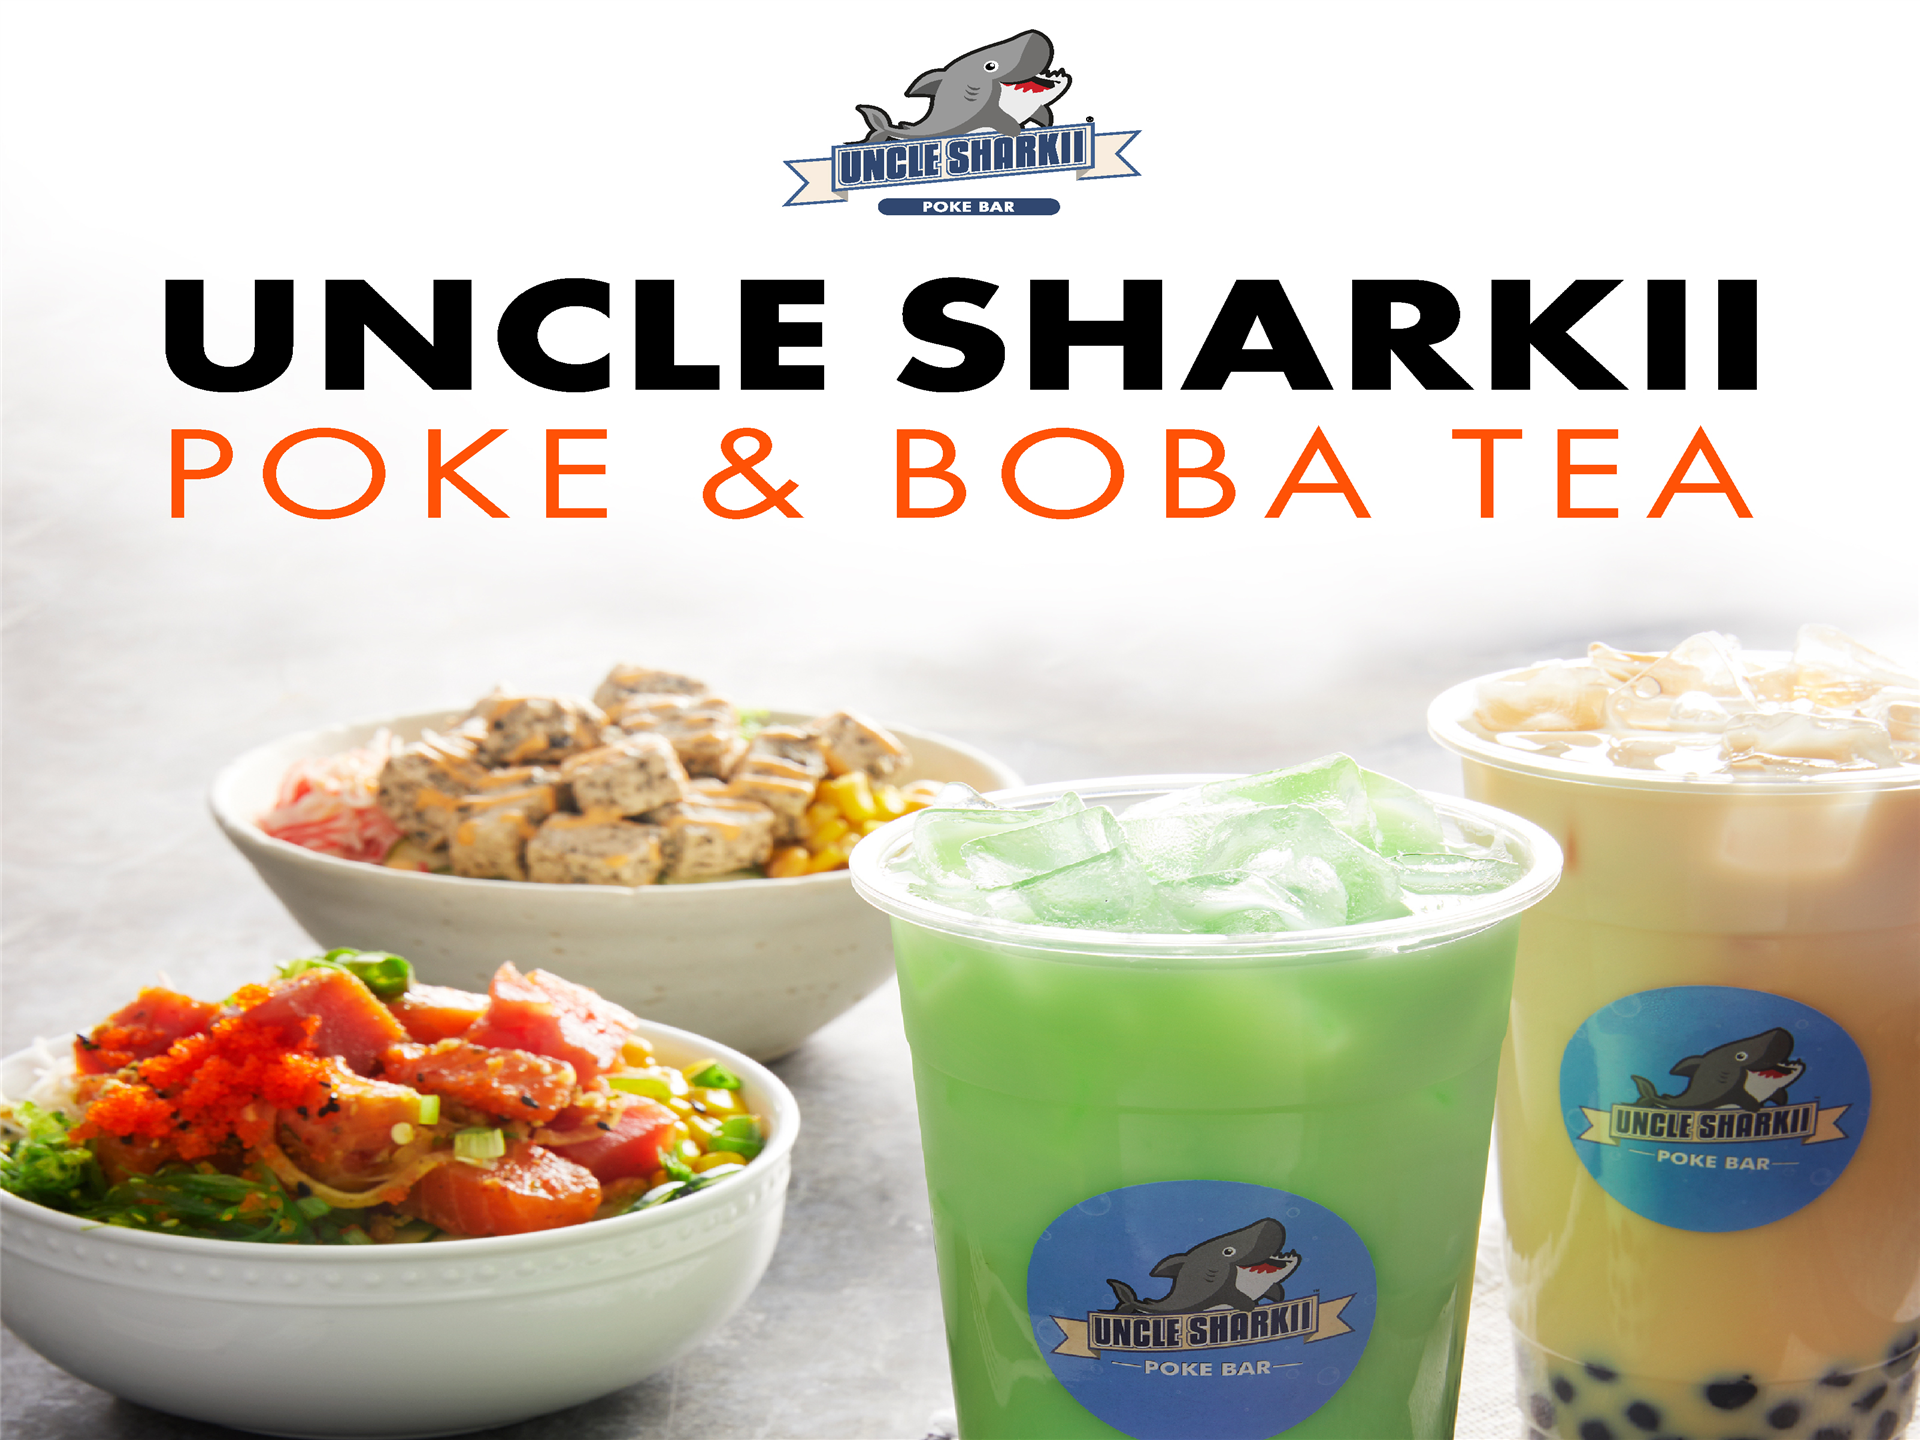 Uncle Sharkii Poke & Boba Tea